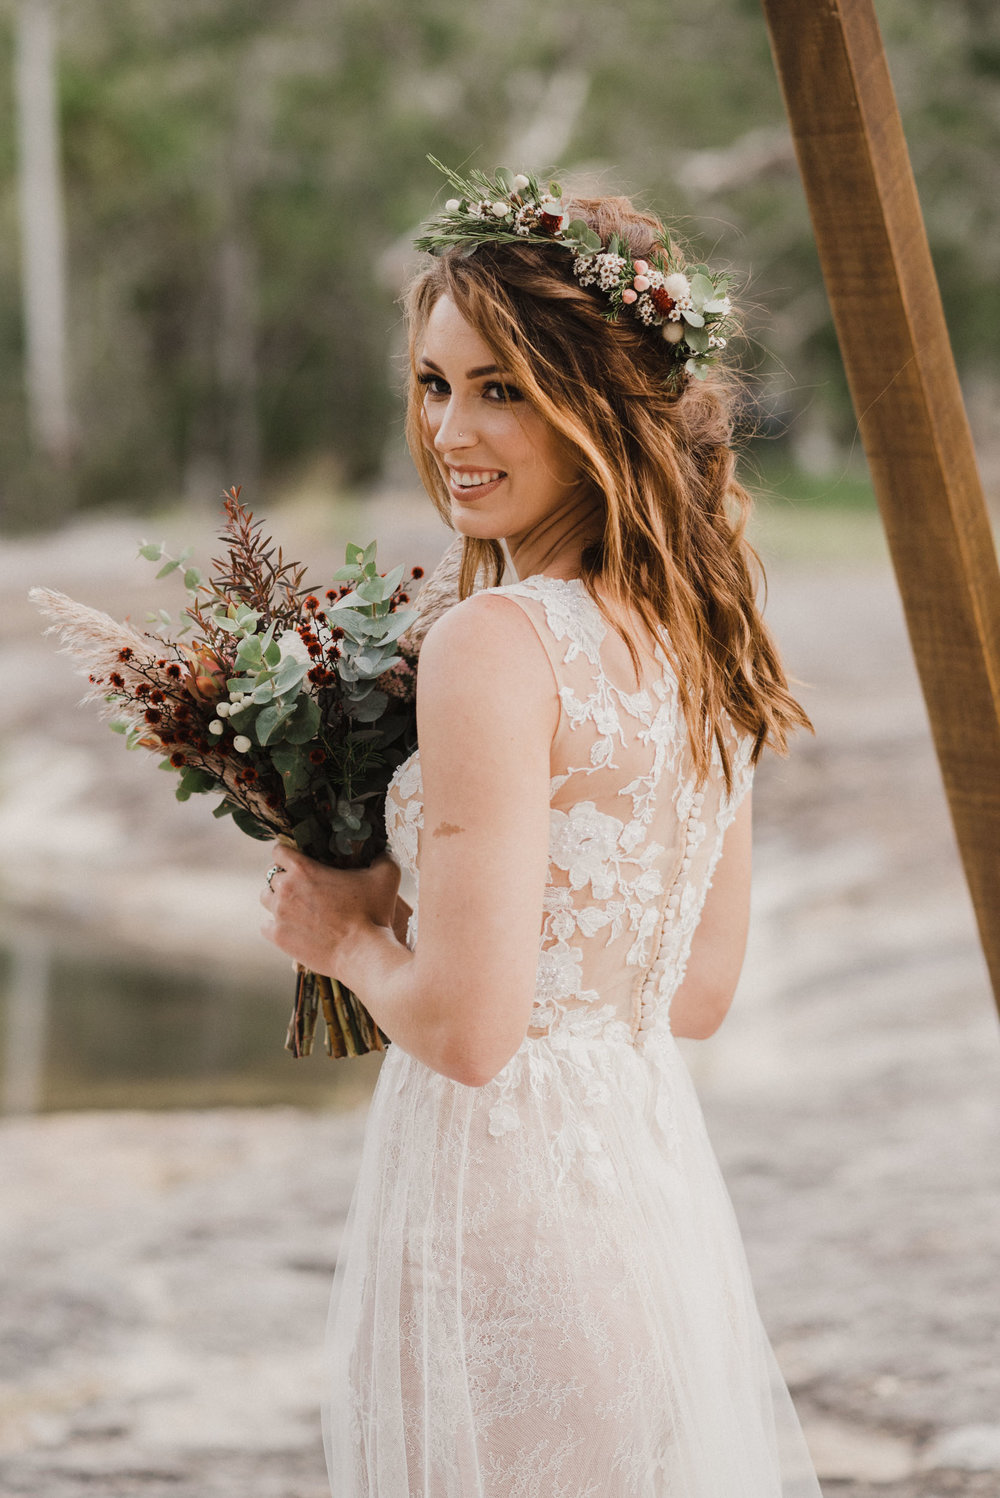 The Raw Photographer - Cairns Wedding Photographer - Brides Styled Shoot - Dress Jonovia Bridal - Hair Makeup Ideas-14.jpg